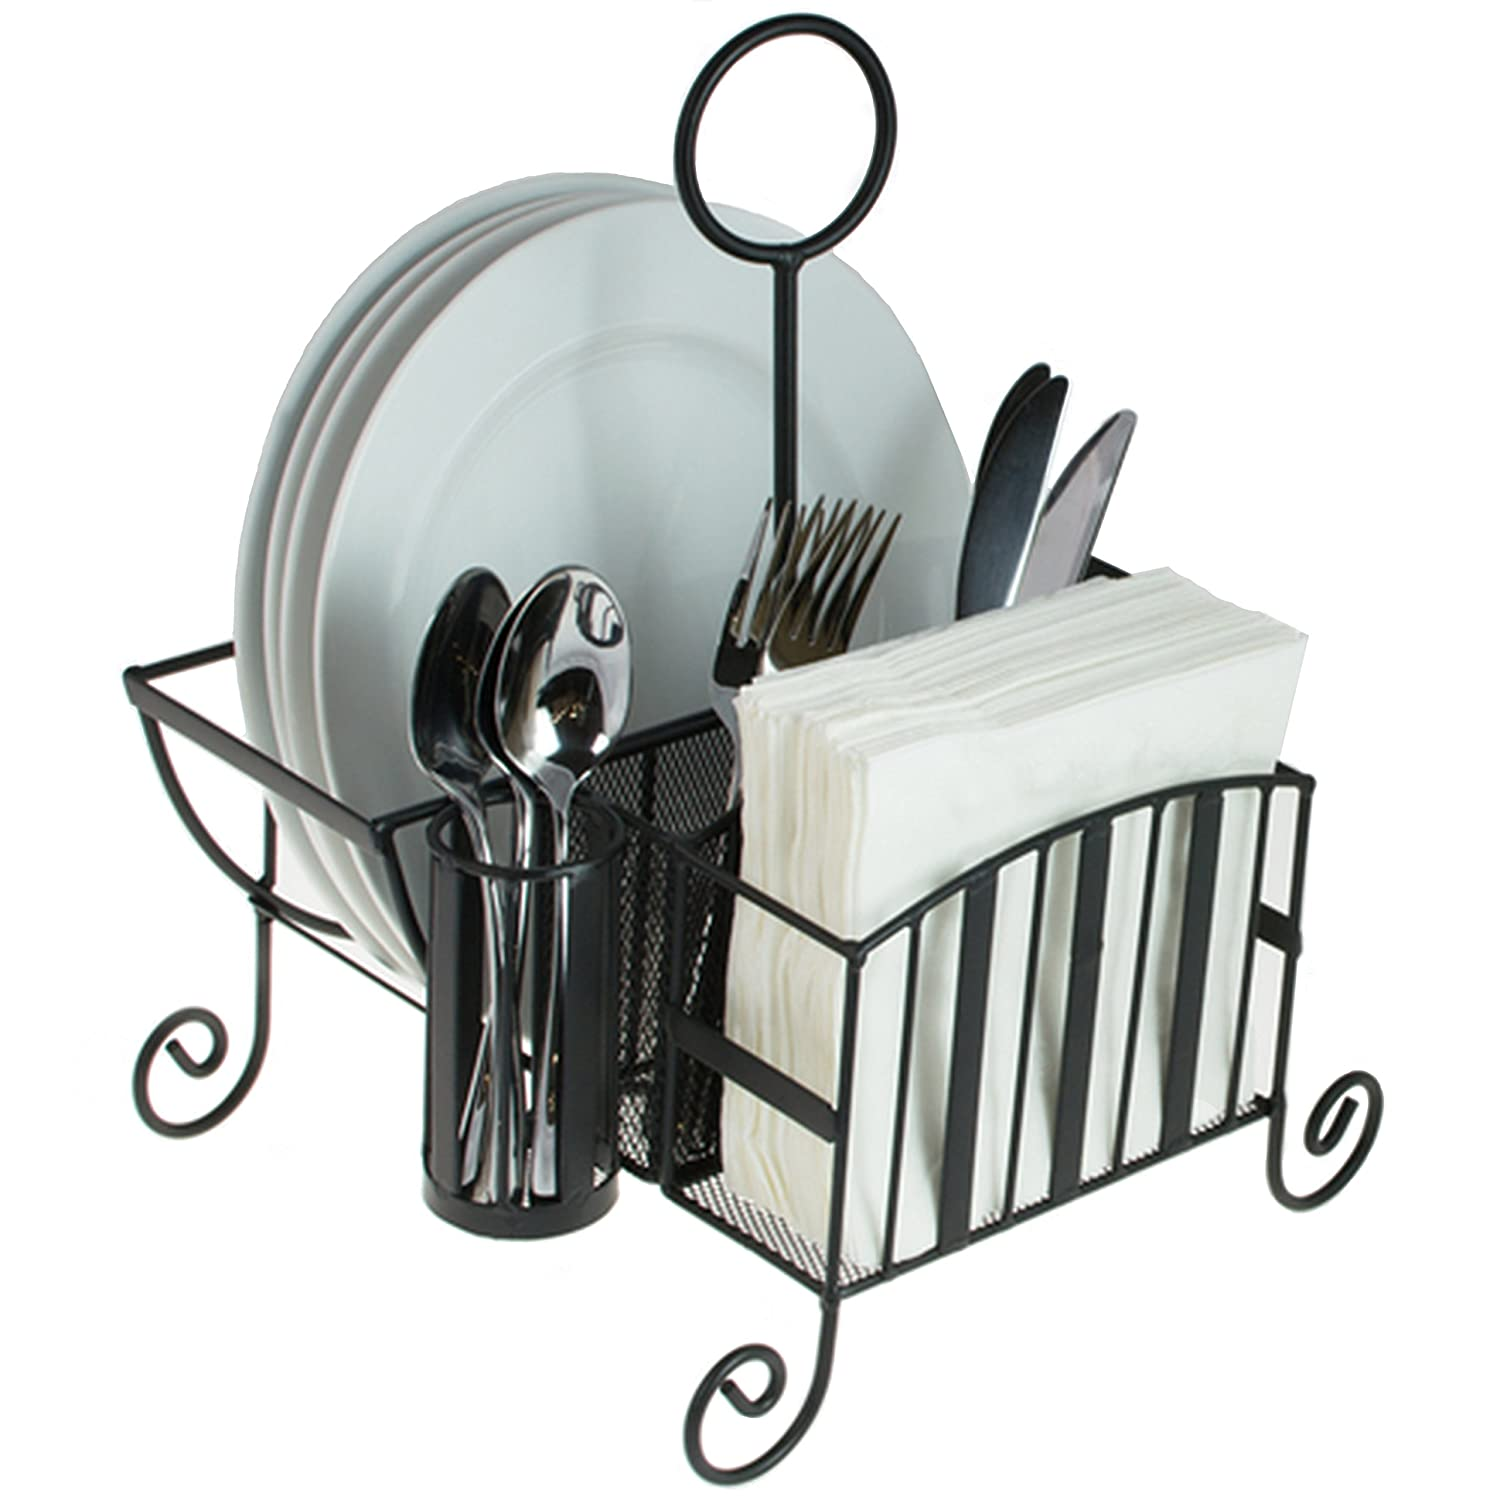 Black Metal Mesh Kitchen / Picnic Buffet Caddy Holder for Utensil, Plates, Napkins with Handle MyGift